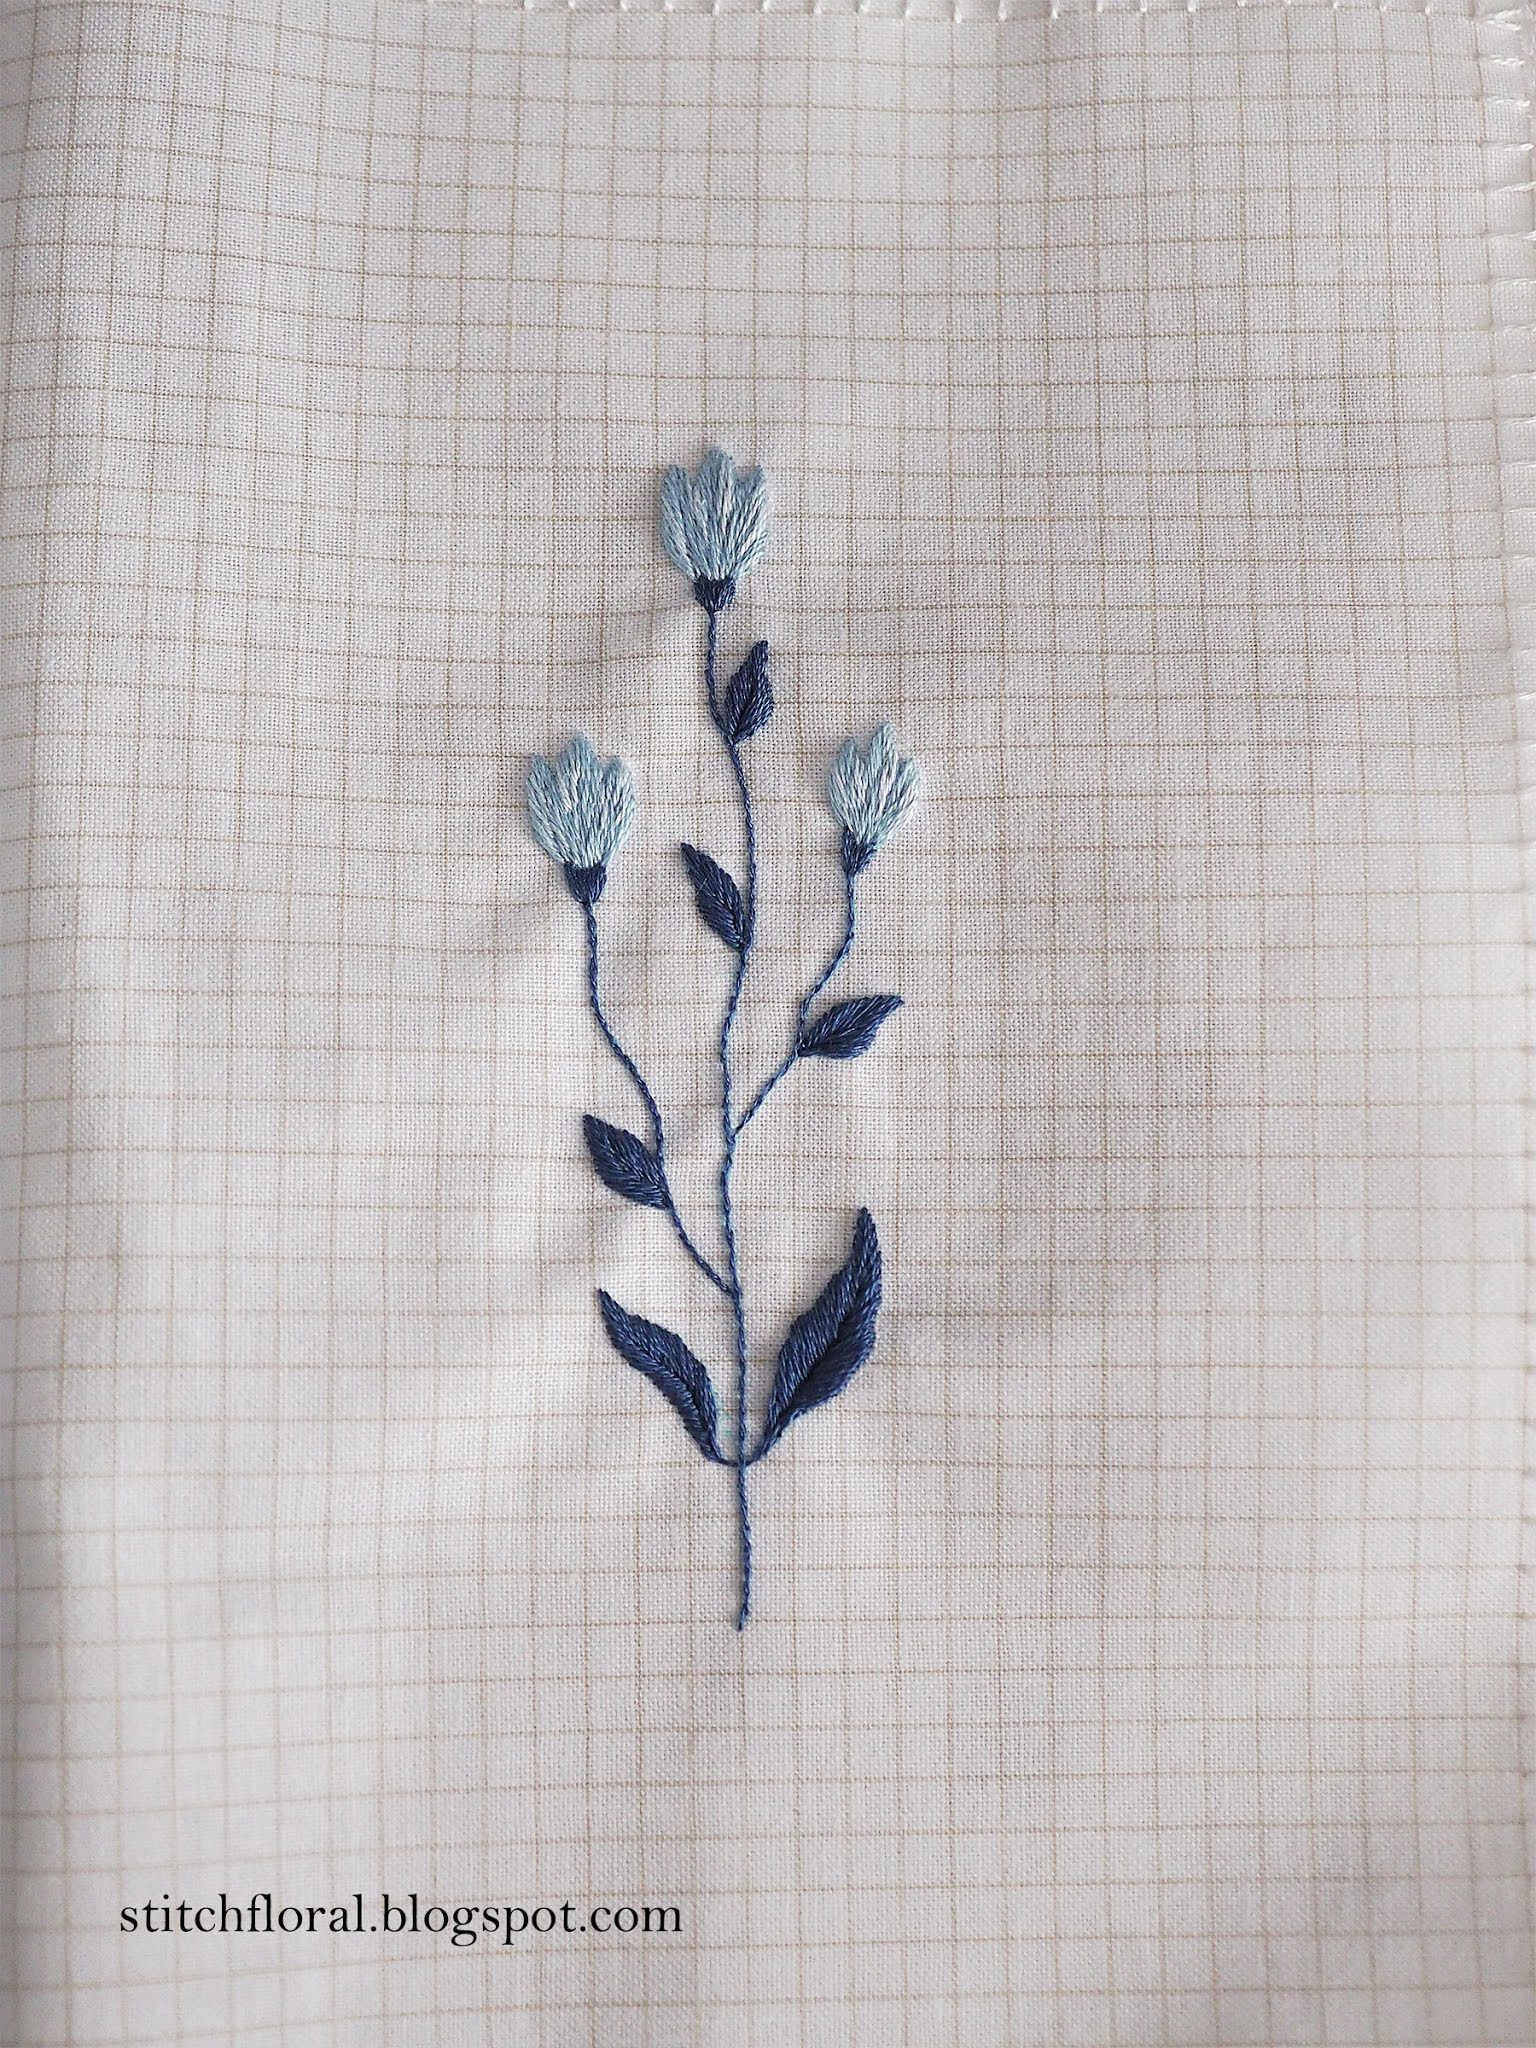 embroidery in blue colors